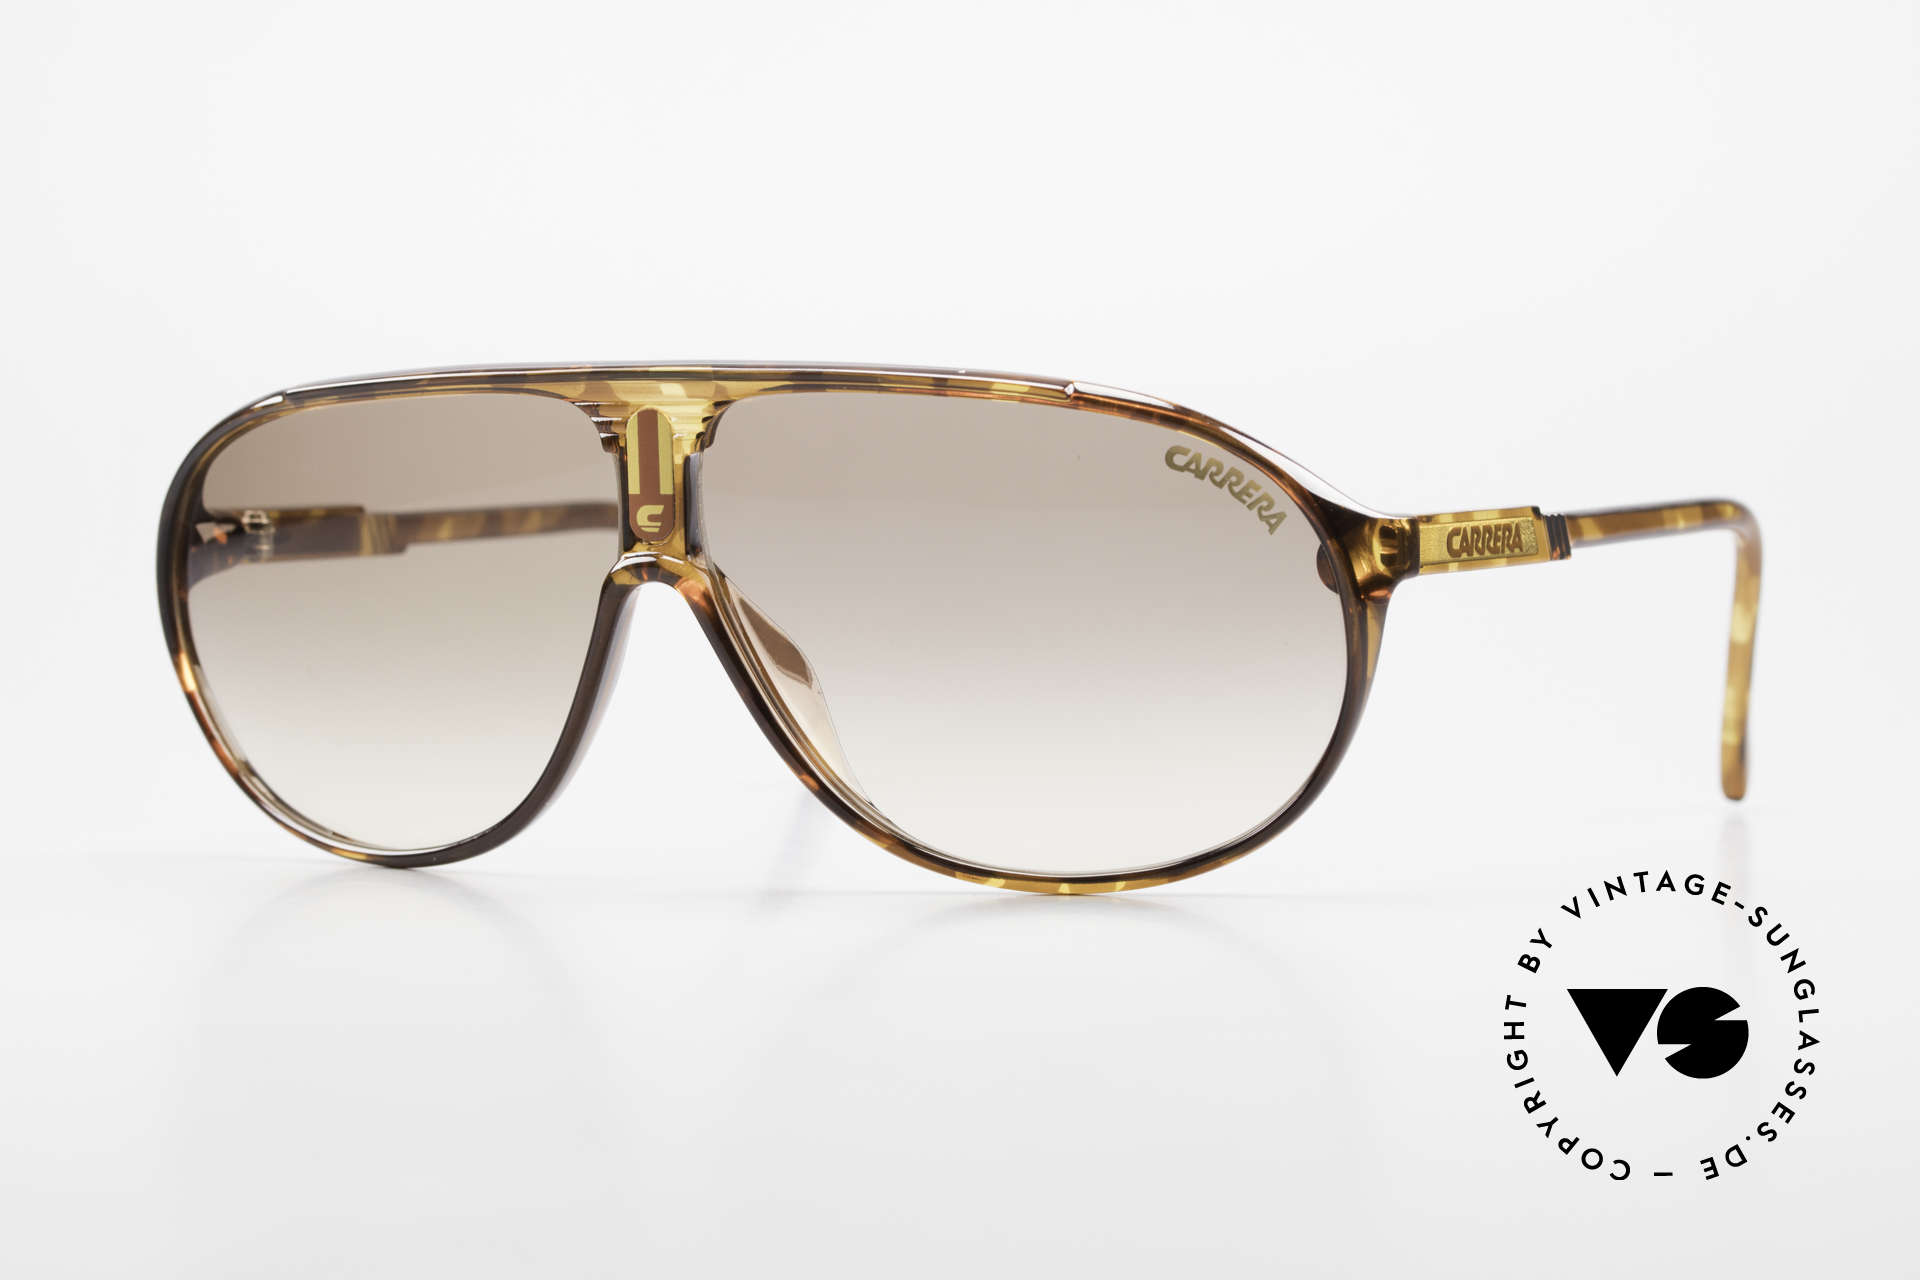 Carrera 5412 Optyl Sunglasses 80's Sport, Carrera performance sunglasses: Collection 1989/1990, Made for Men and Women